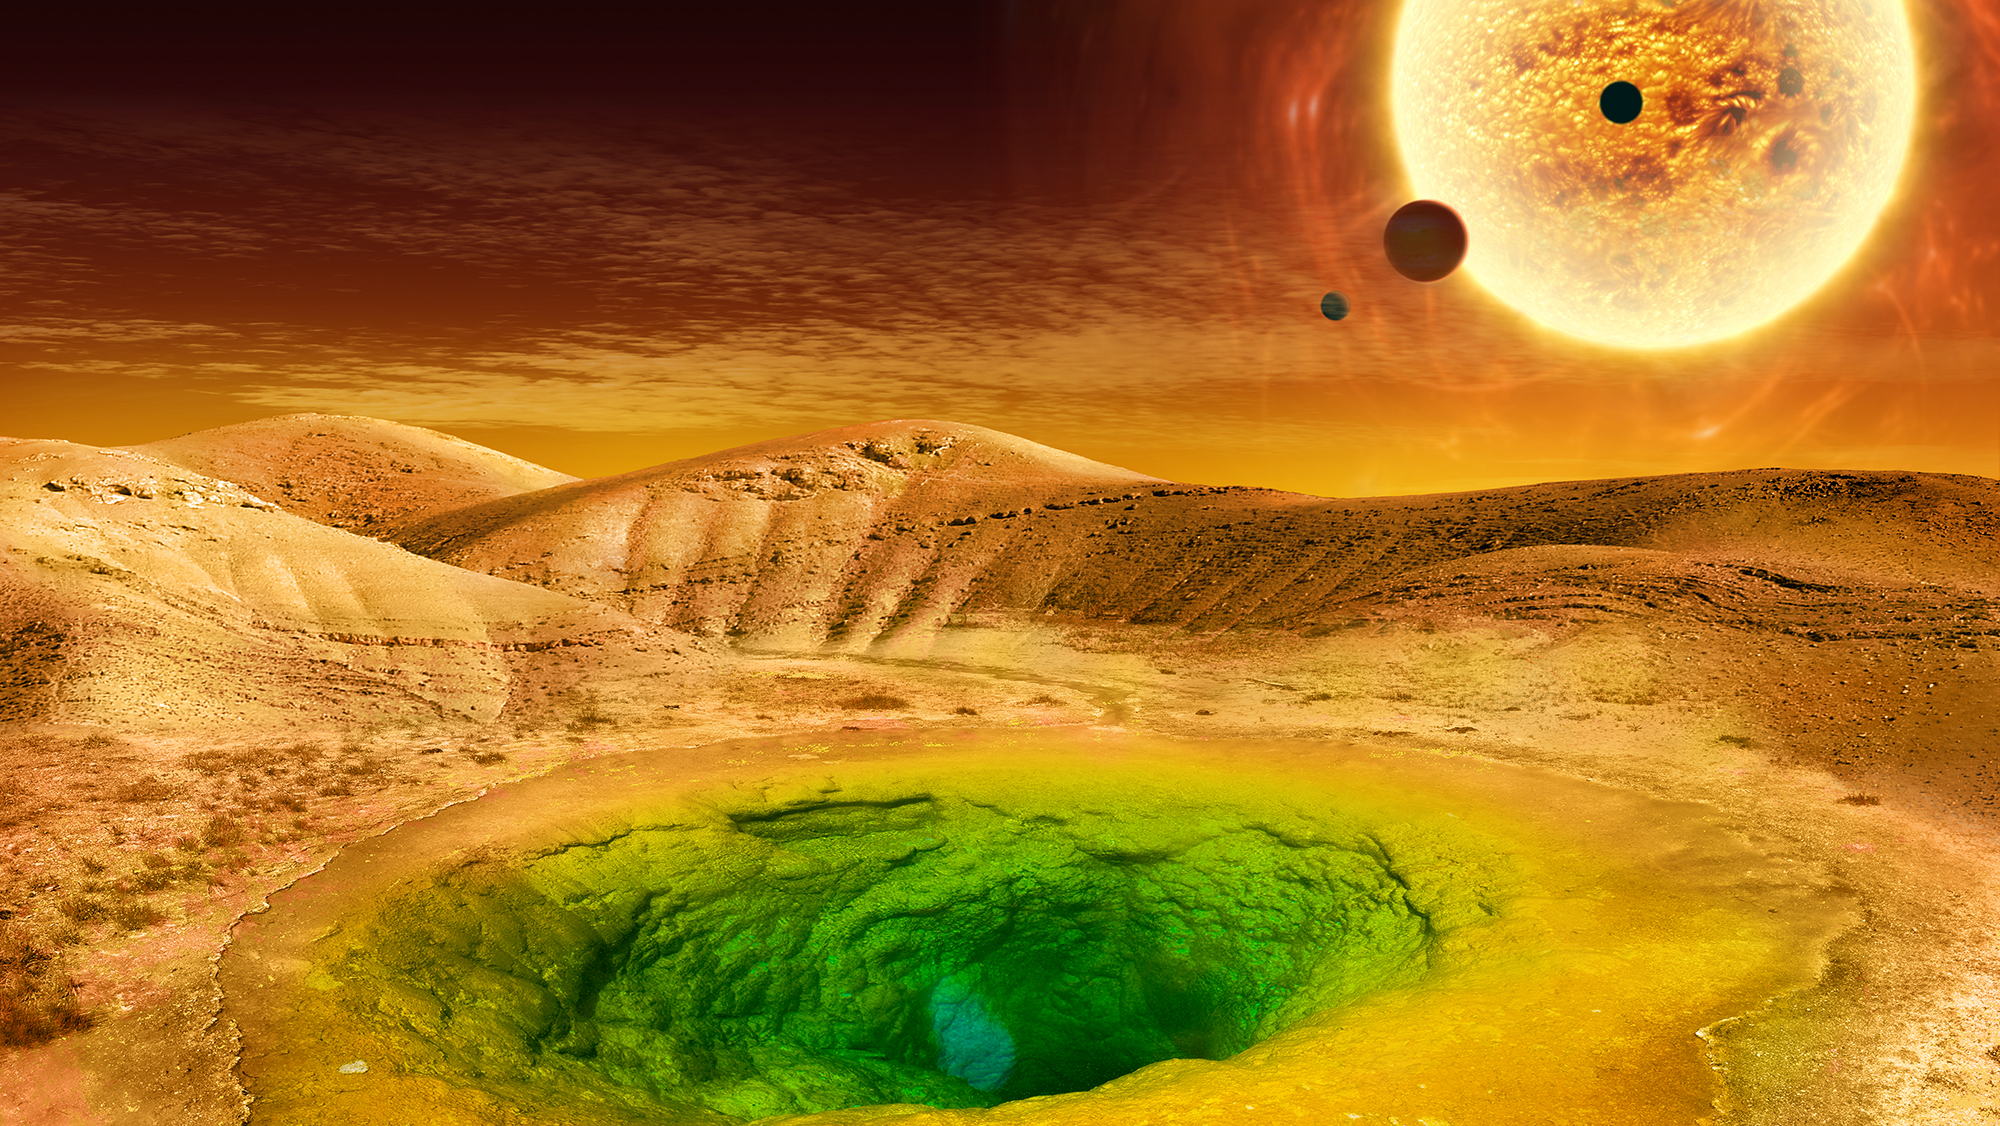 Artist's conception of what life could look like on the surface of a distant planet. - Image Credits: NASA